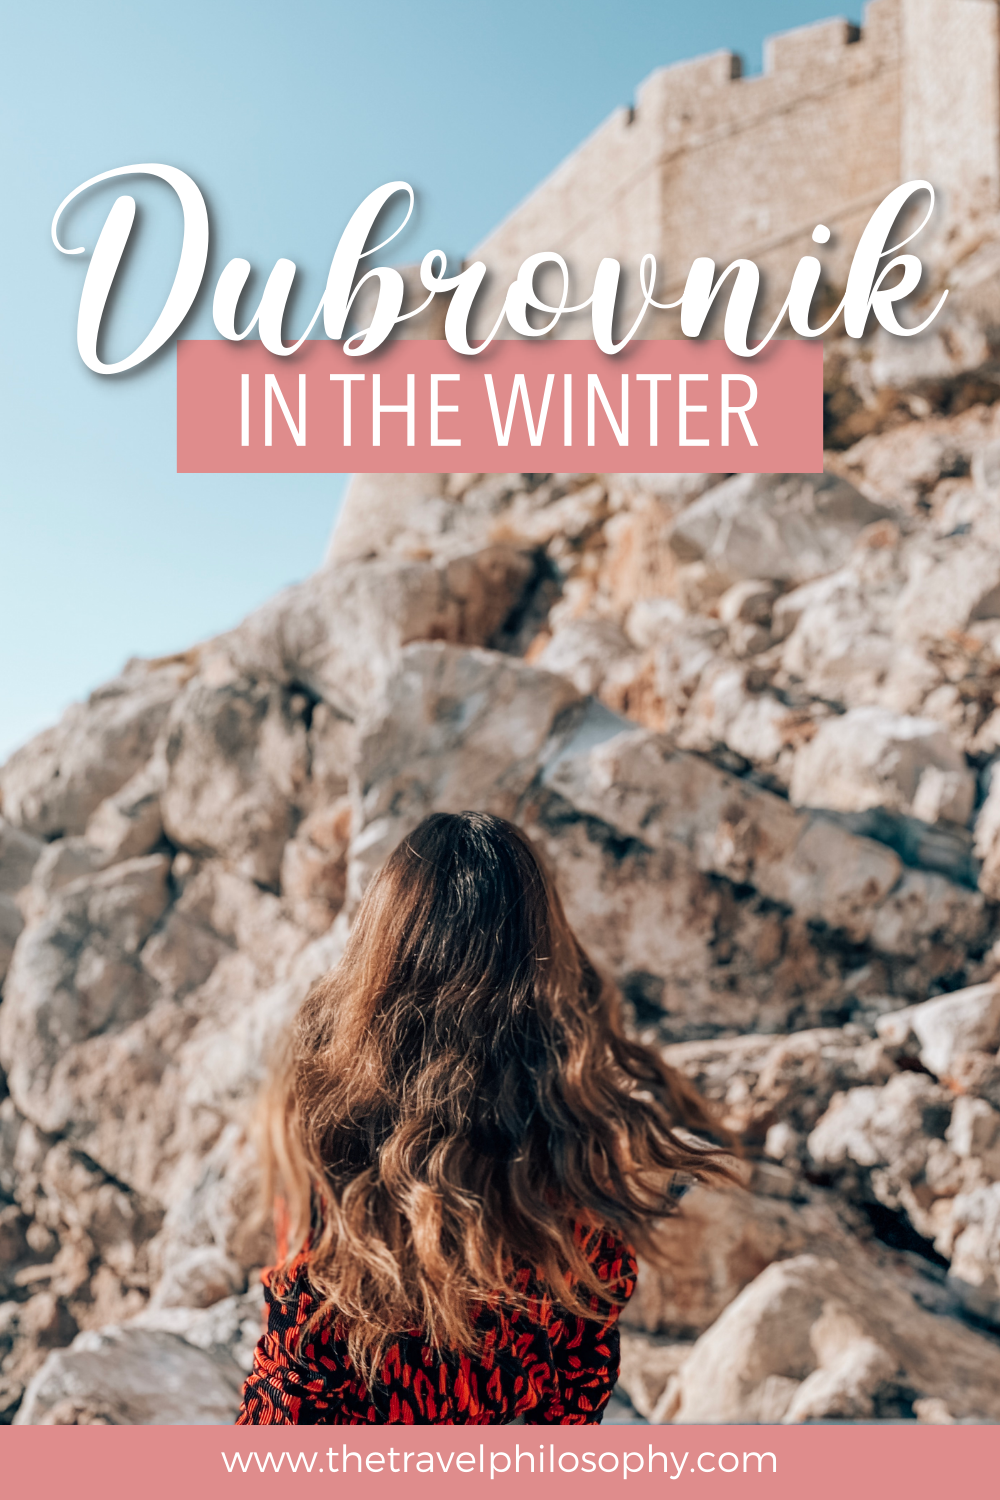 Why You Should Visit Dubrovnik in the Winter